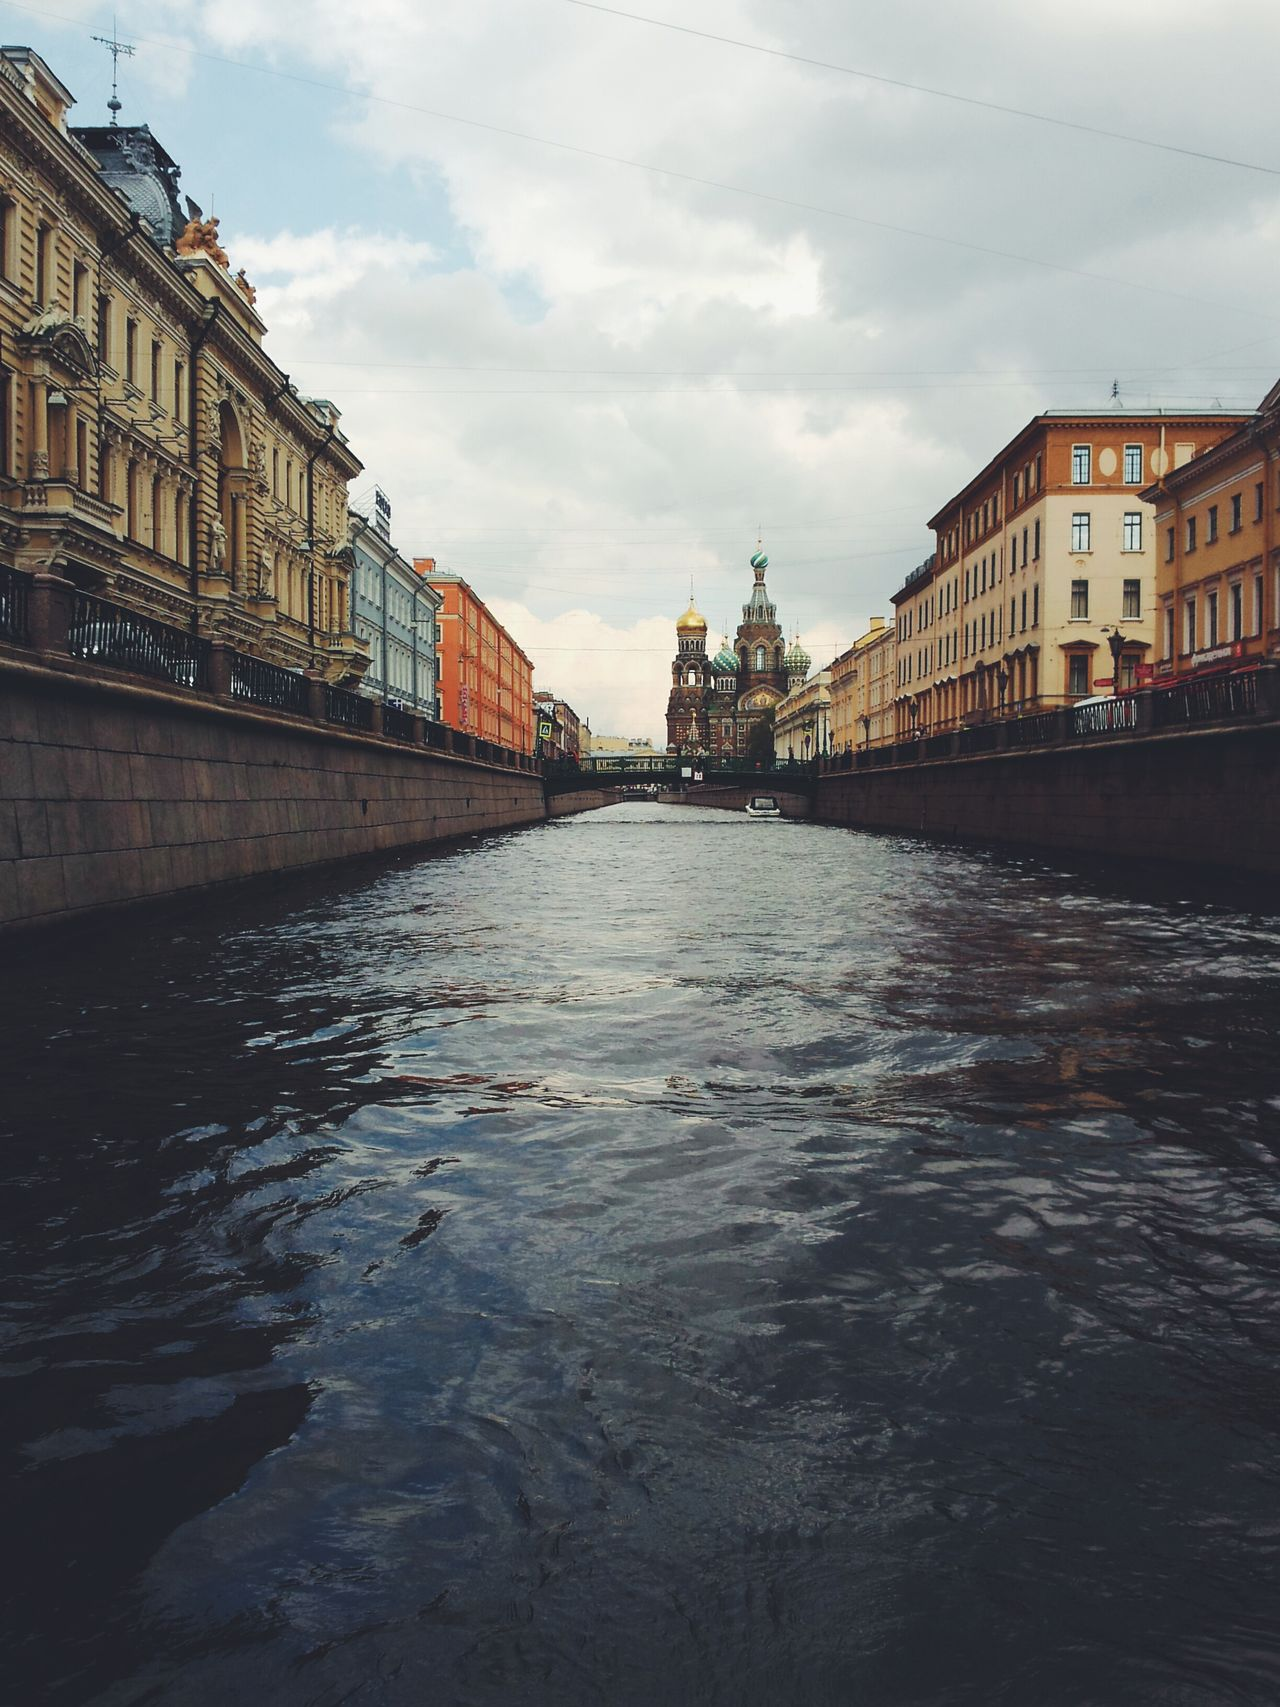 Saint Petersburg Saint-Petersburg Griboedov Channel Griboyedov Canal Spas Na Krovi Neva Neva River River Architecture Water Outdoors Cityscape Sky And Clouds No People The Great Outdoors - 2017 EyeEm Awards The Architect - 2017 EyeEm Awards